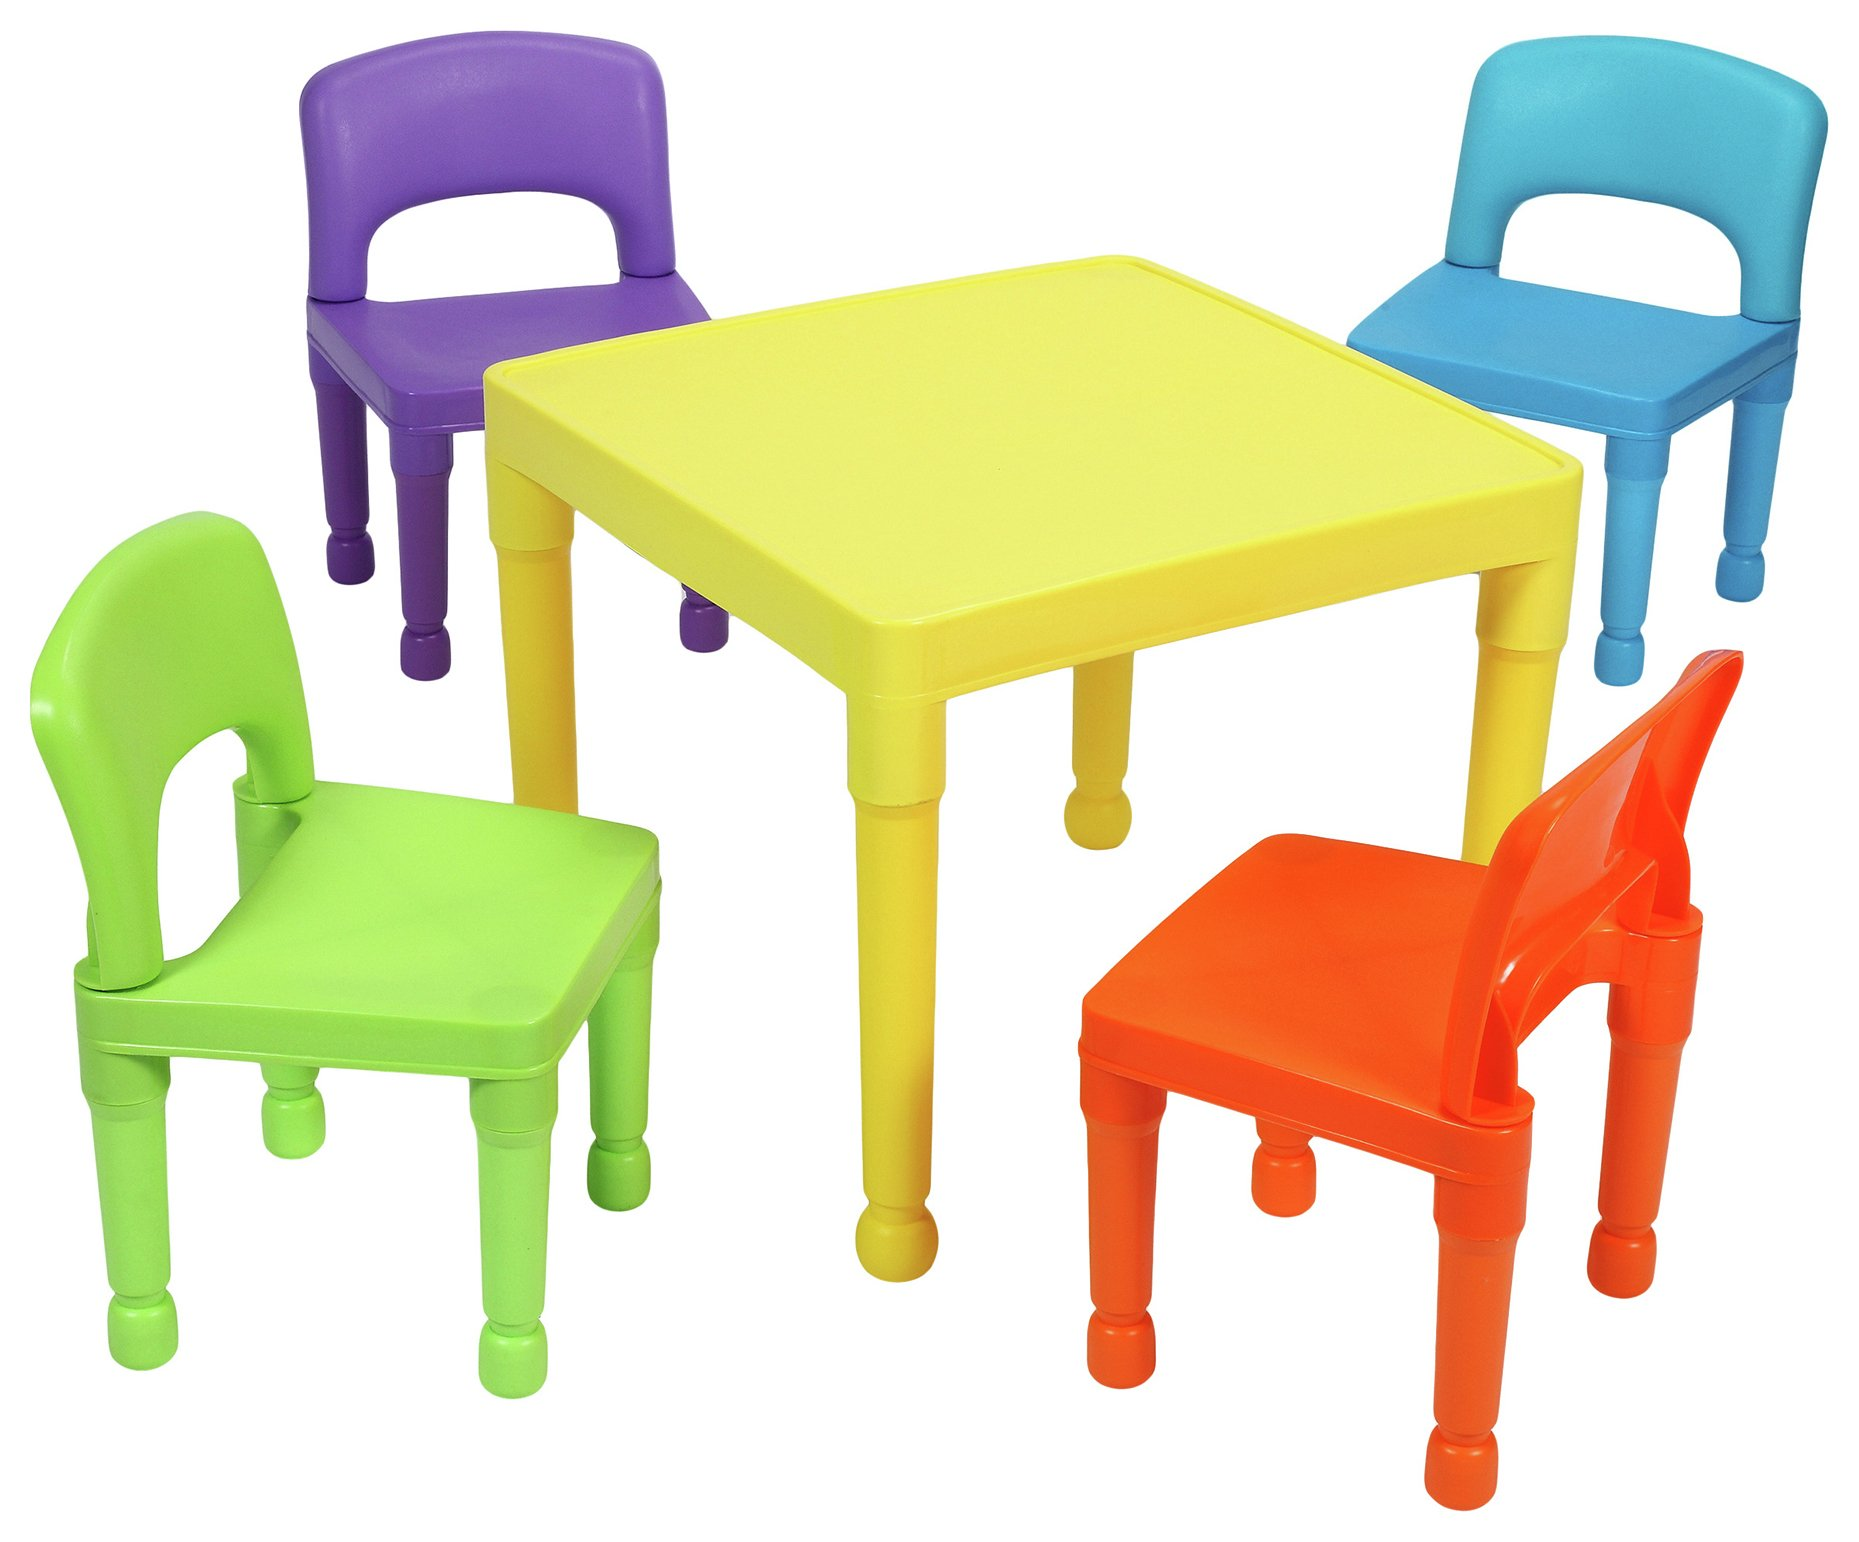 childrens garden furniture liberty house multicoloured nursery table and 4 chairs PJMIKDT